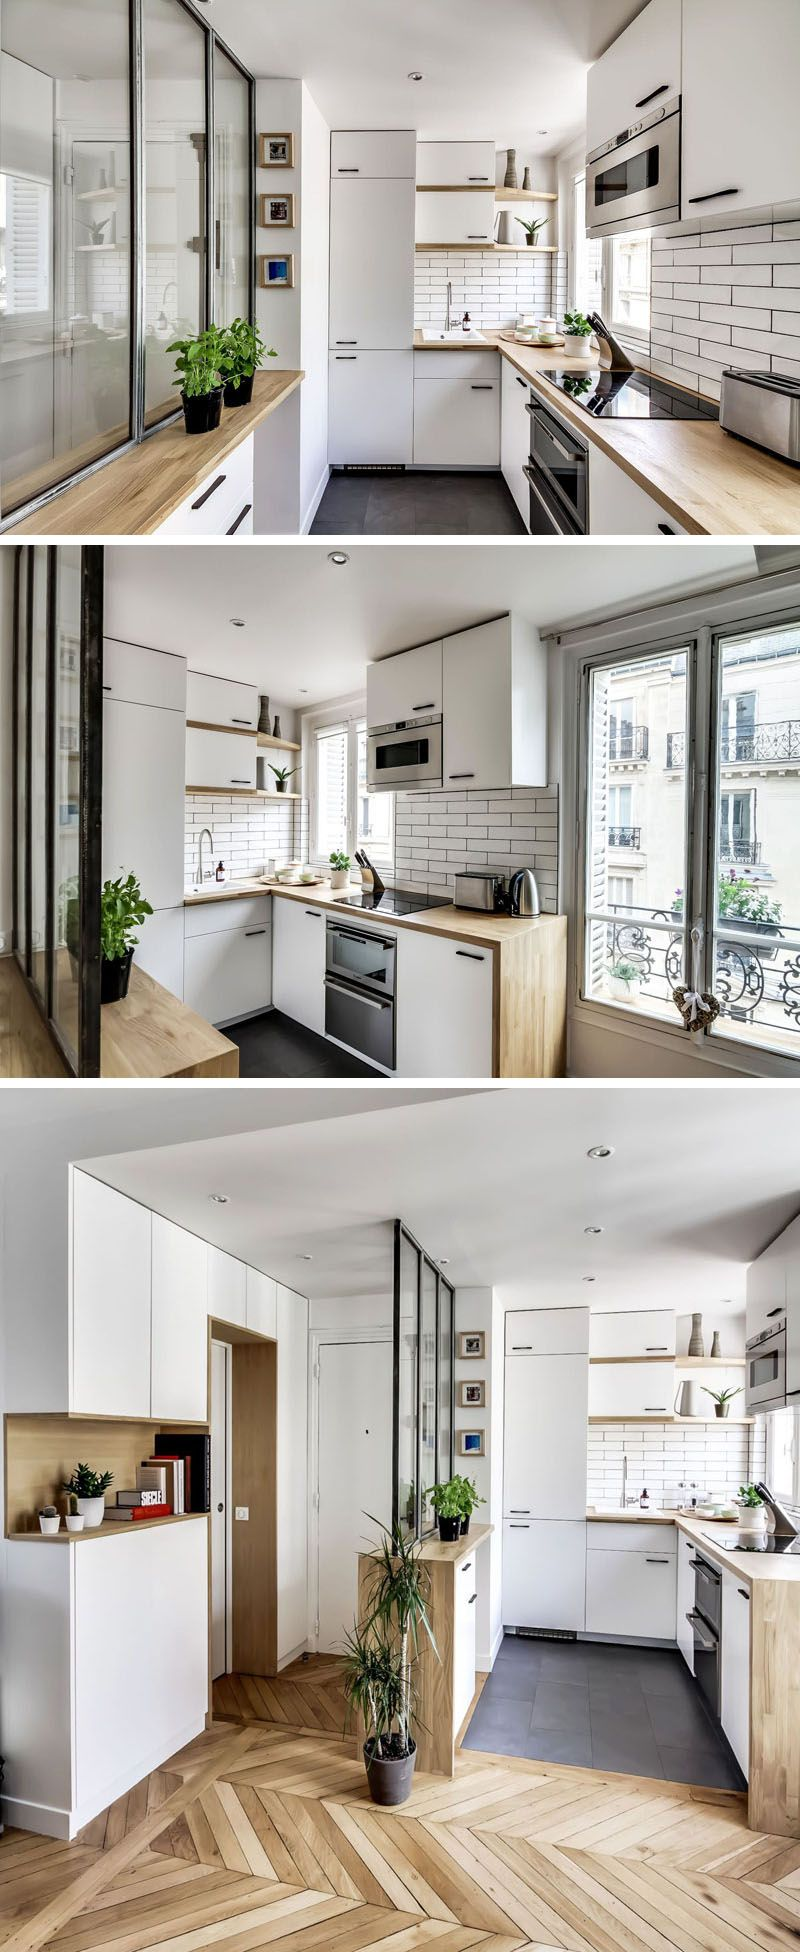 The angular design of the kitchen: the pros and cons 96